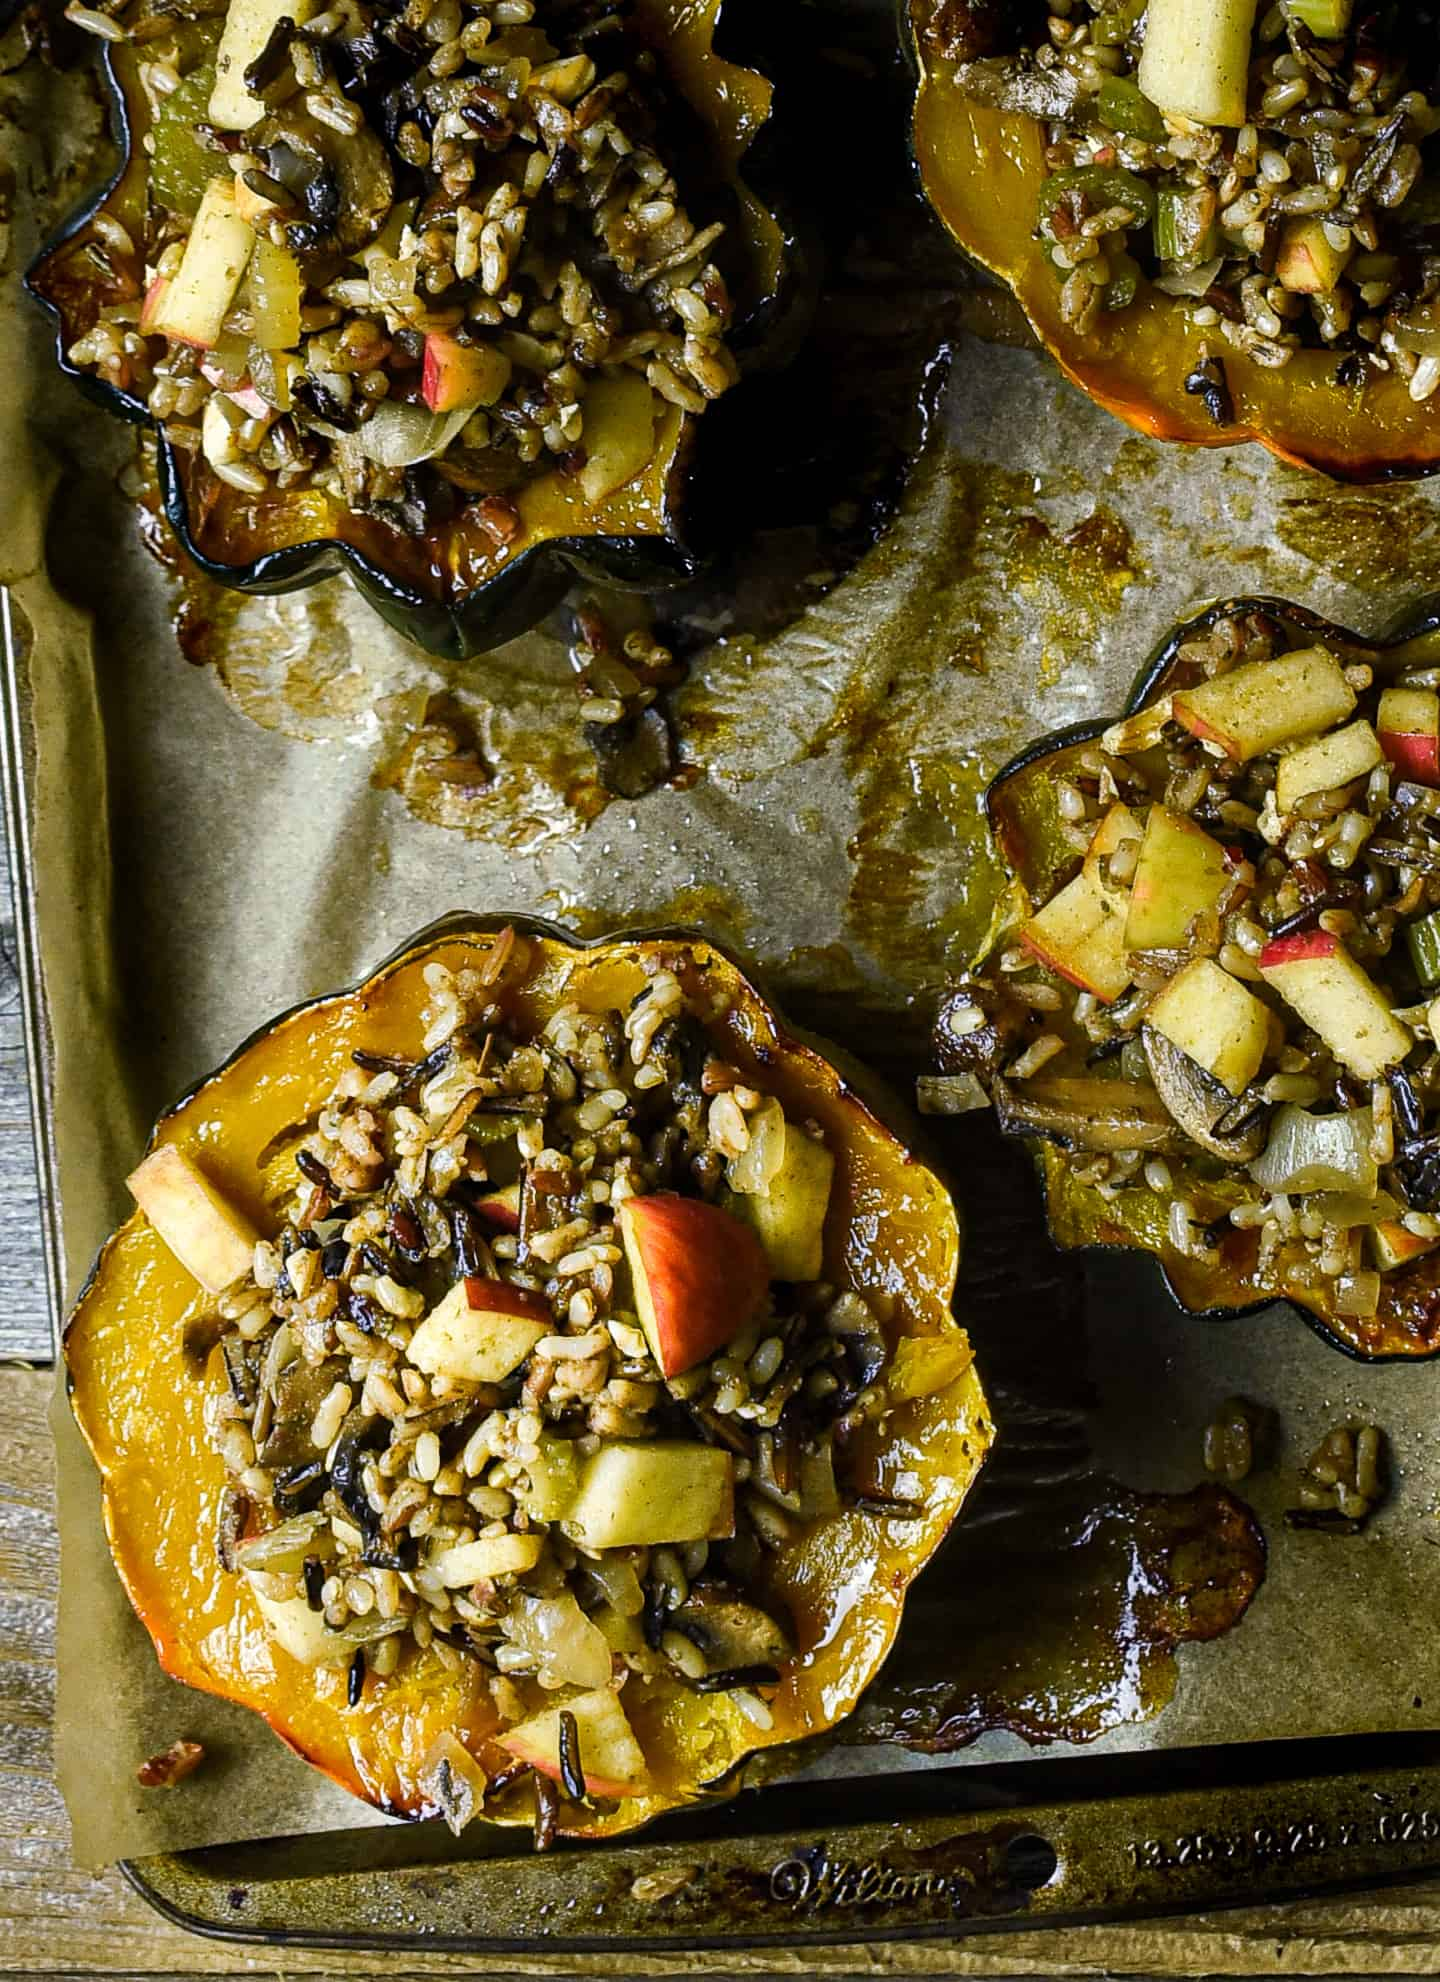 Roasted acorn squash on baking sheet with parchment paper.